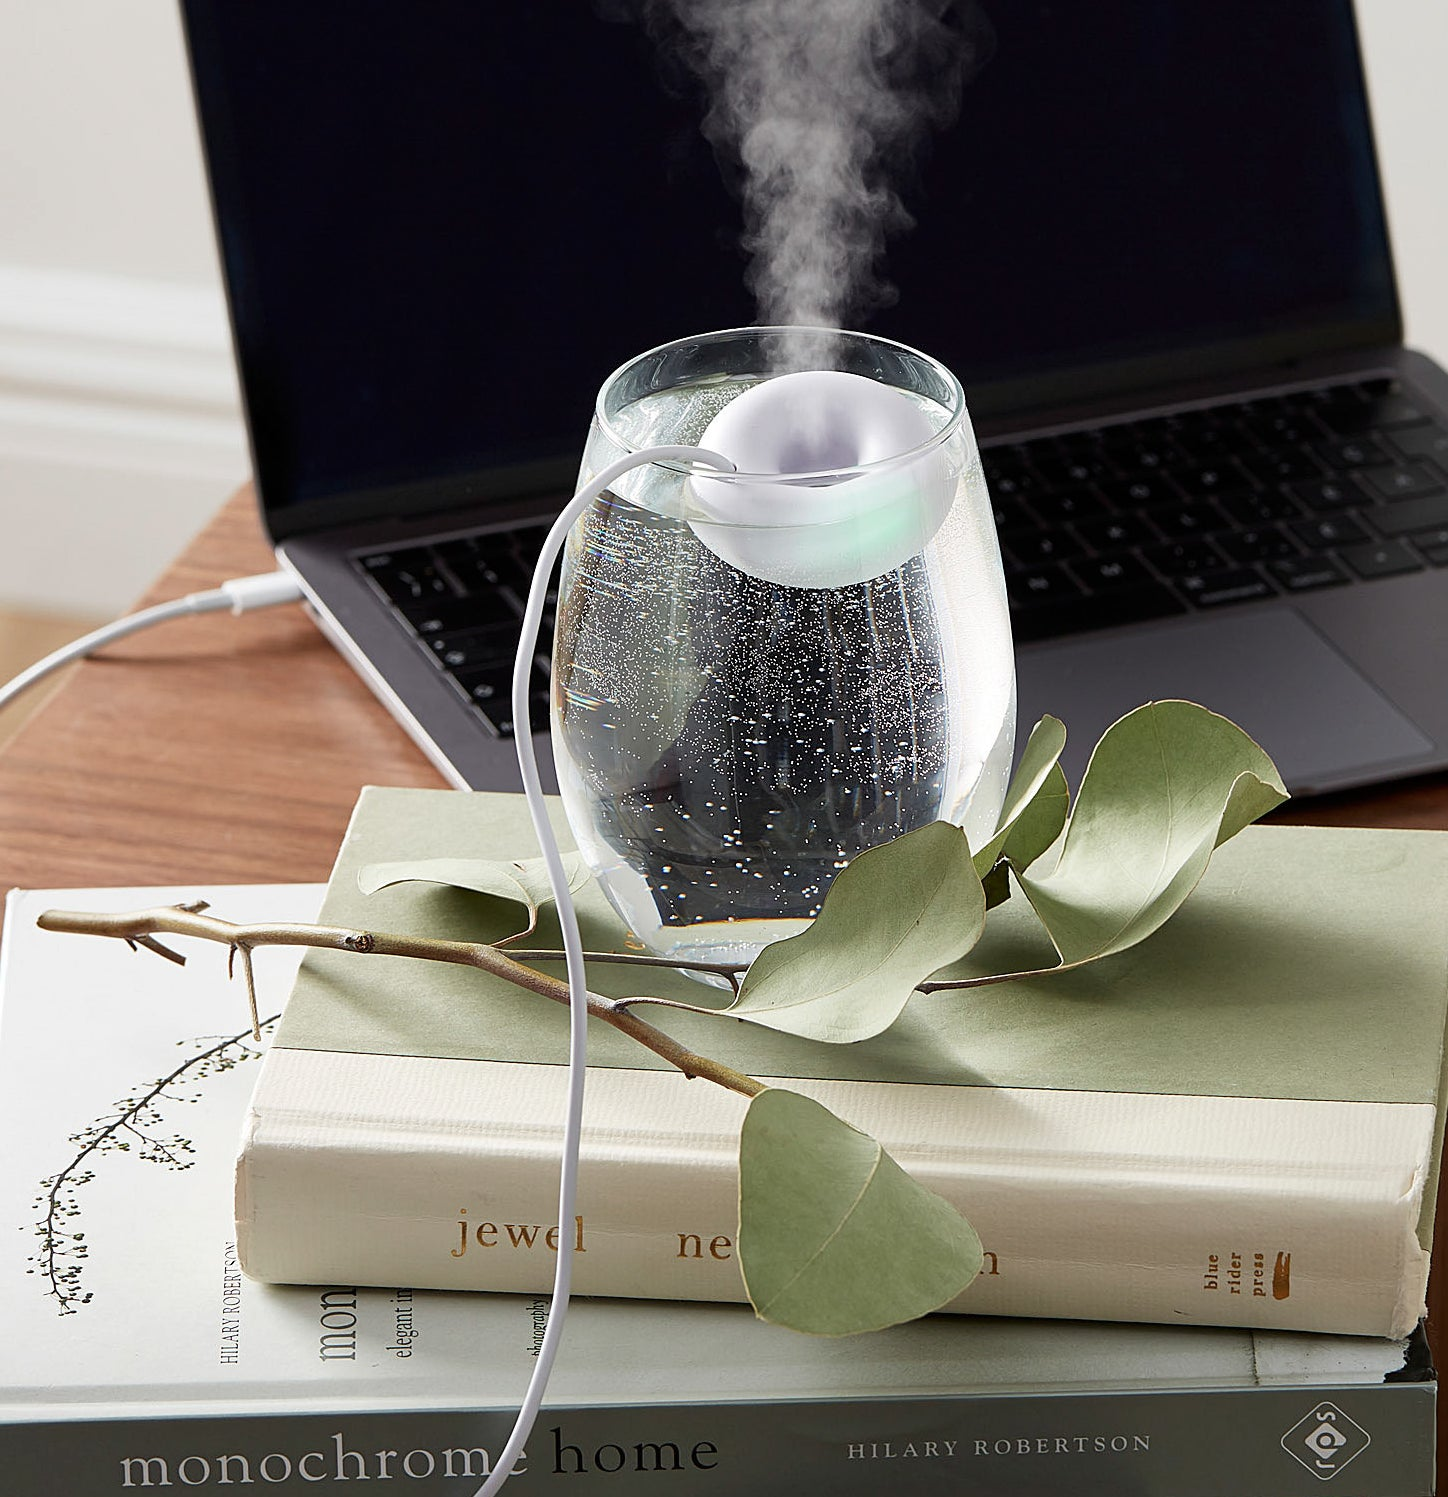 The mini humidifier in a glass of water